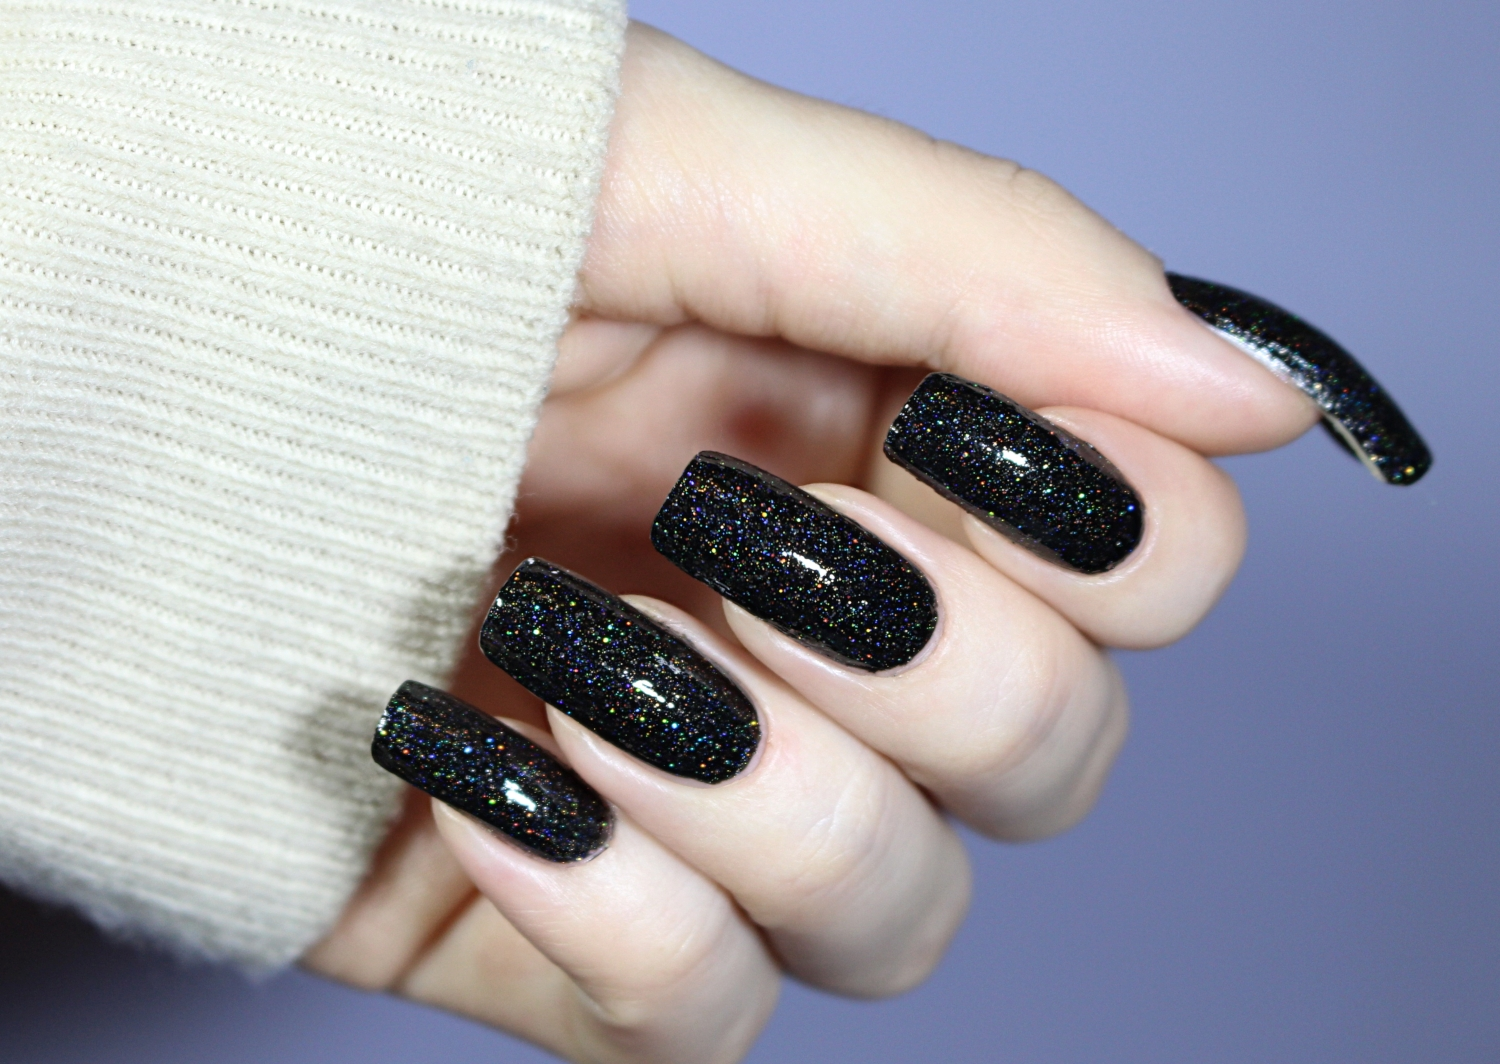 black holographic manicure close up picture